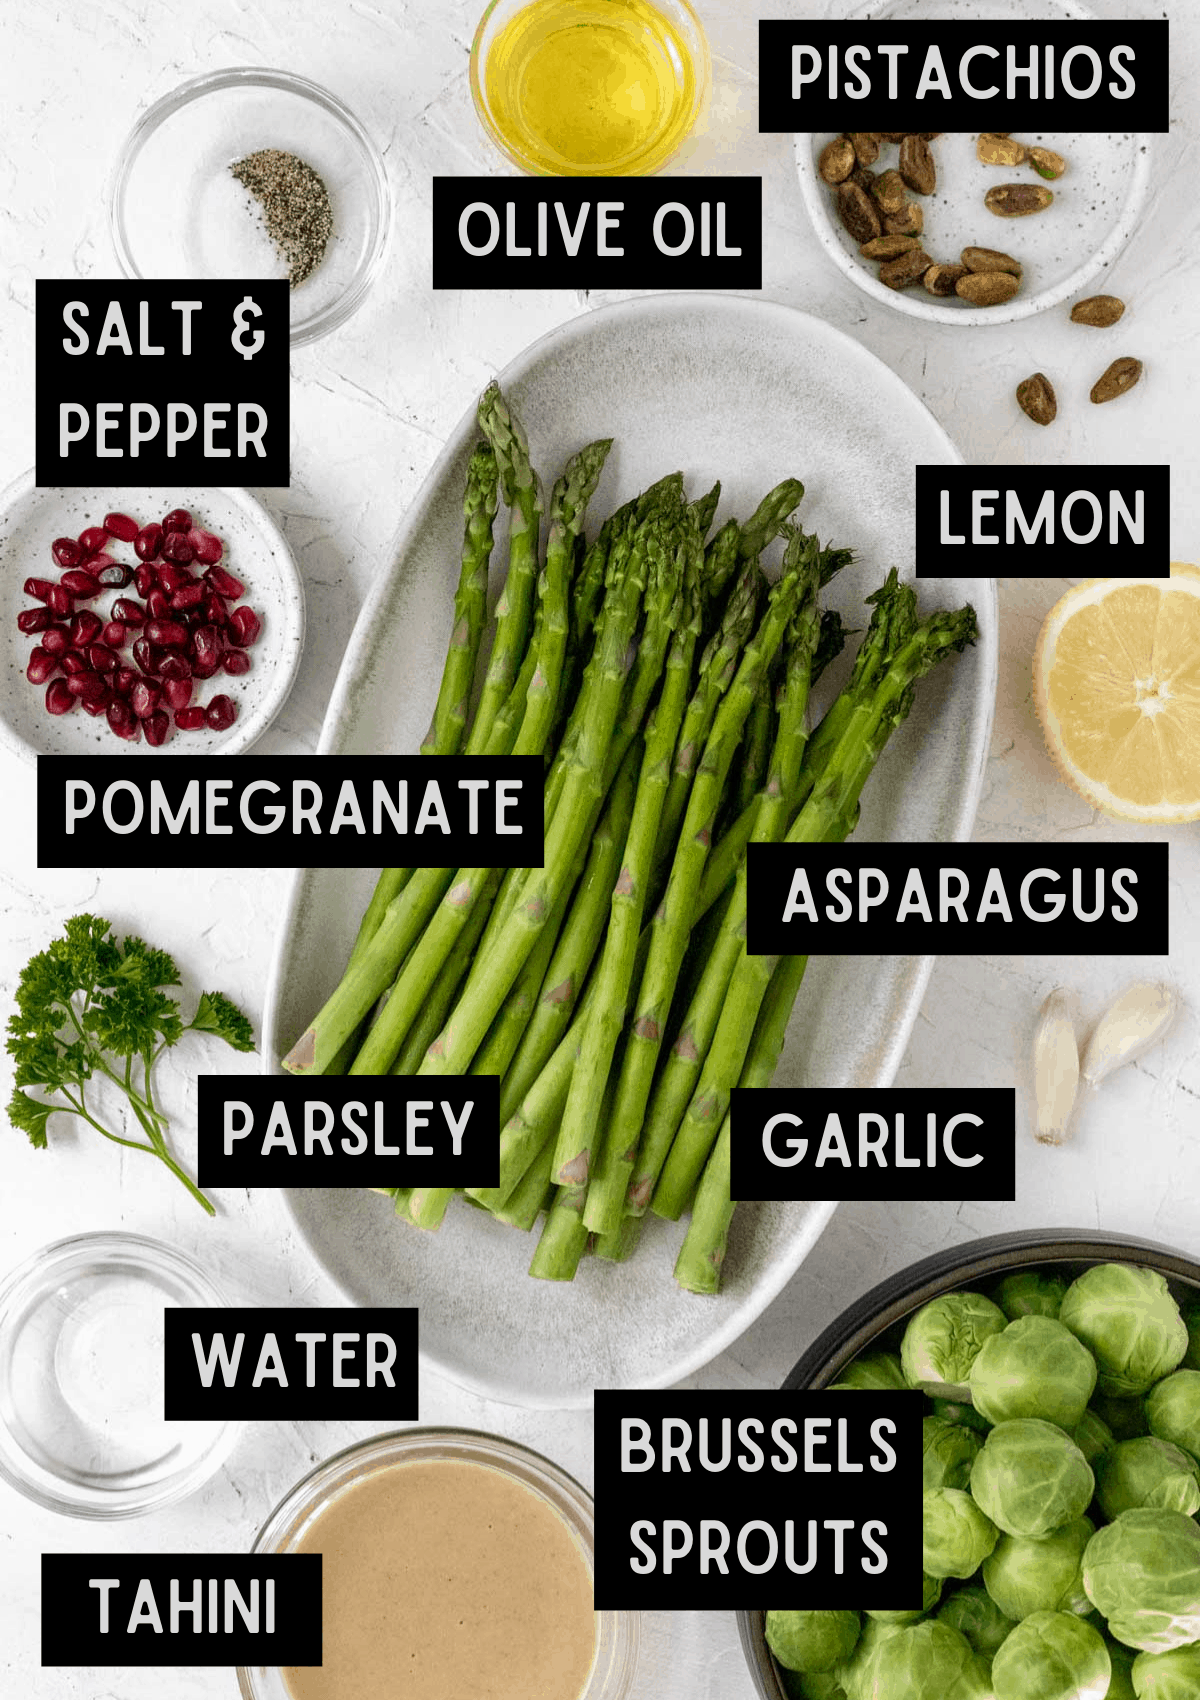 Labelled ingredients for roasted asparagus, brussels sprouts, and lemon tahini sauce (see recipe for details).